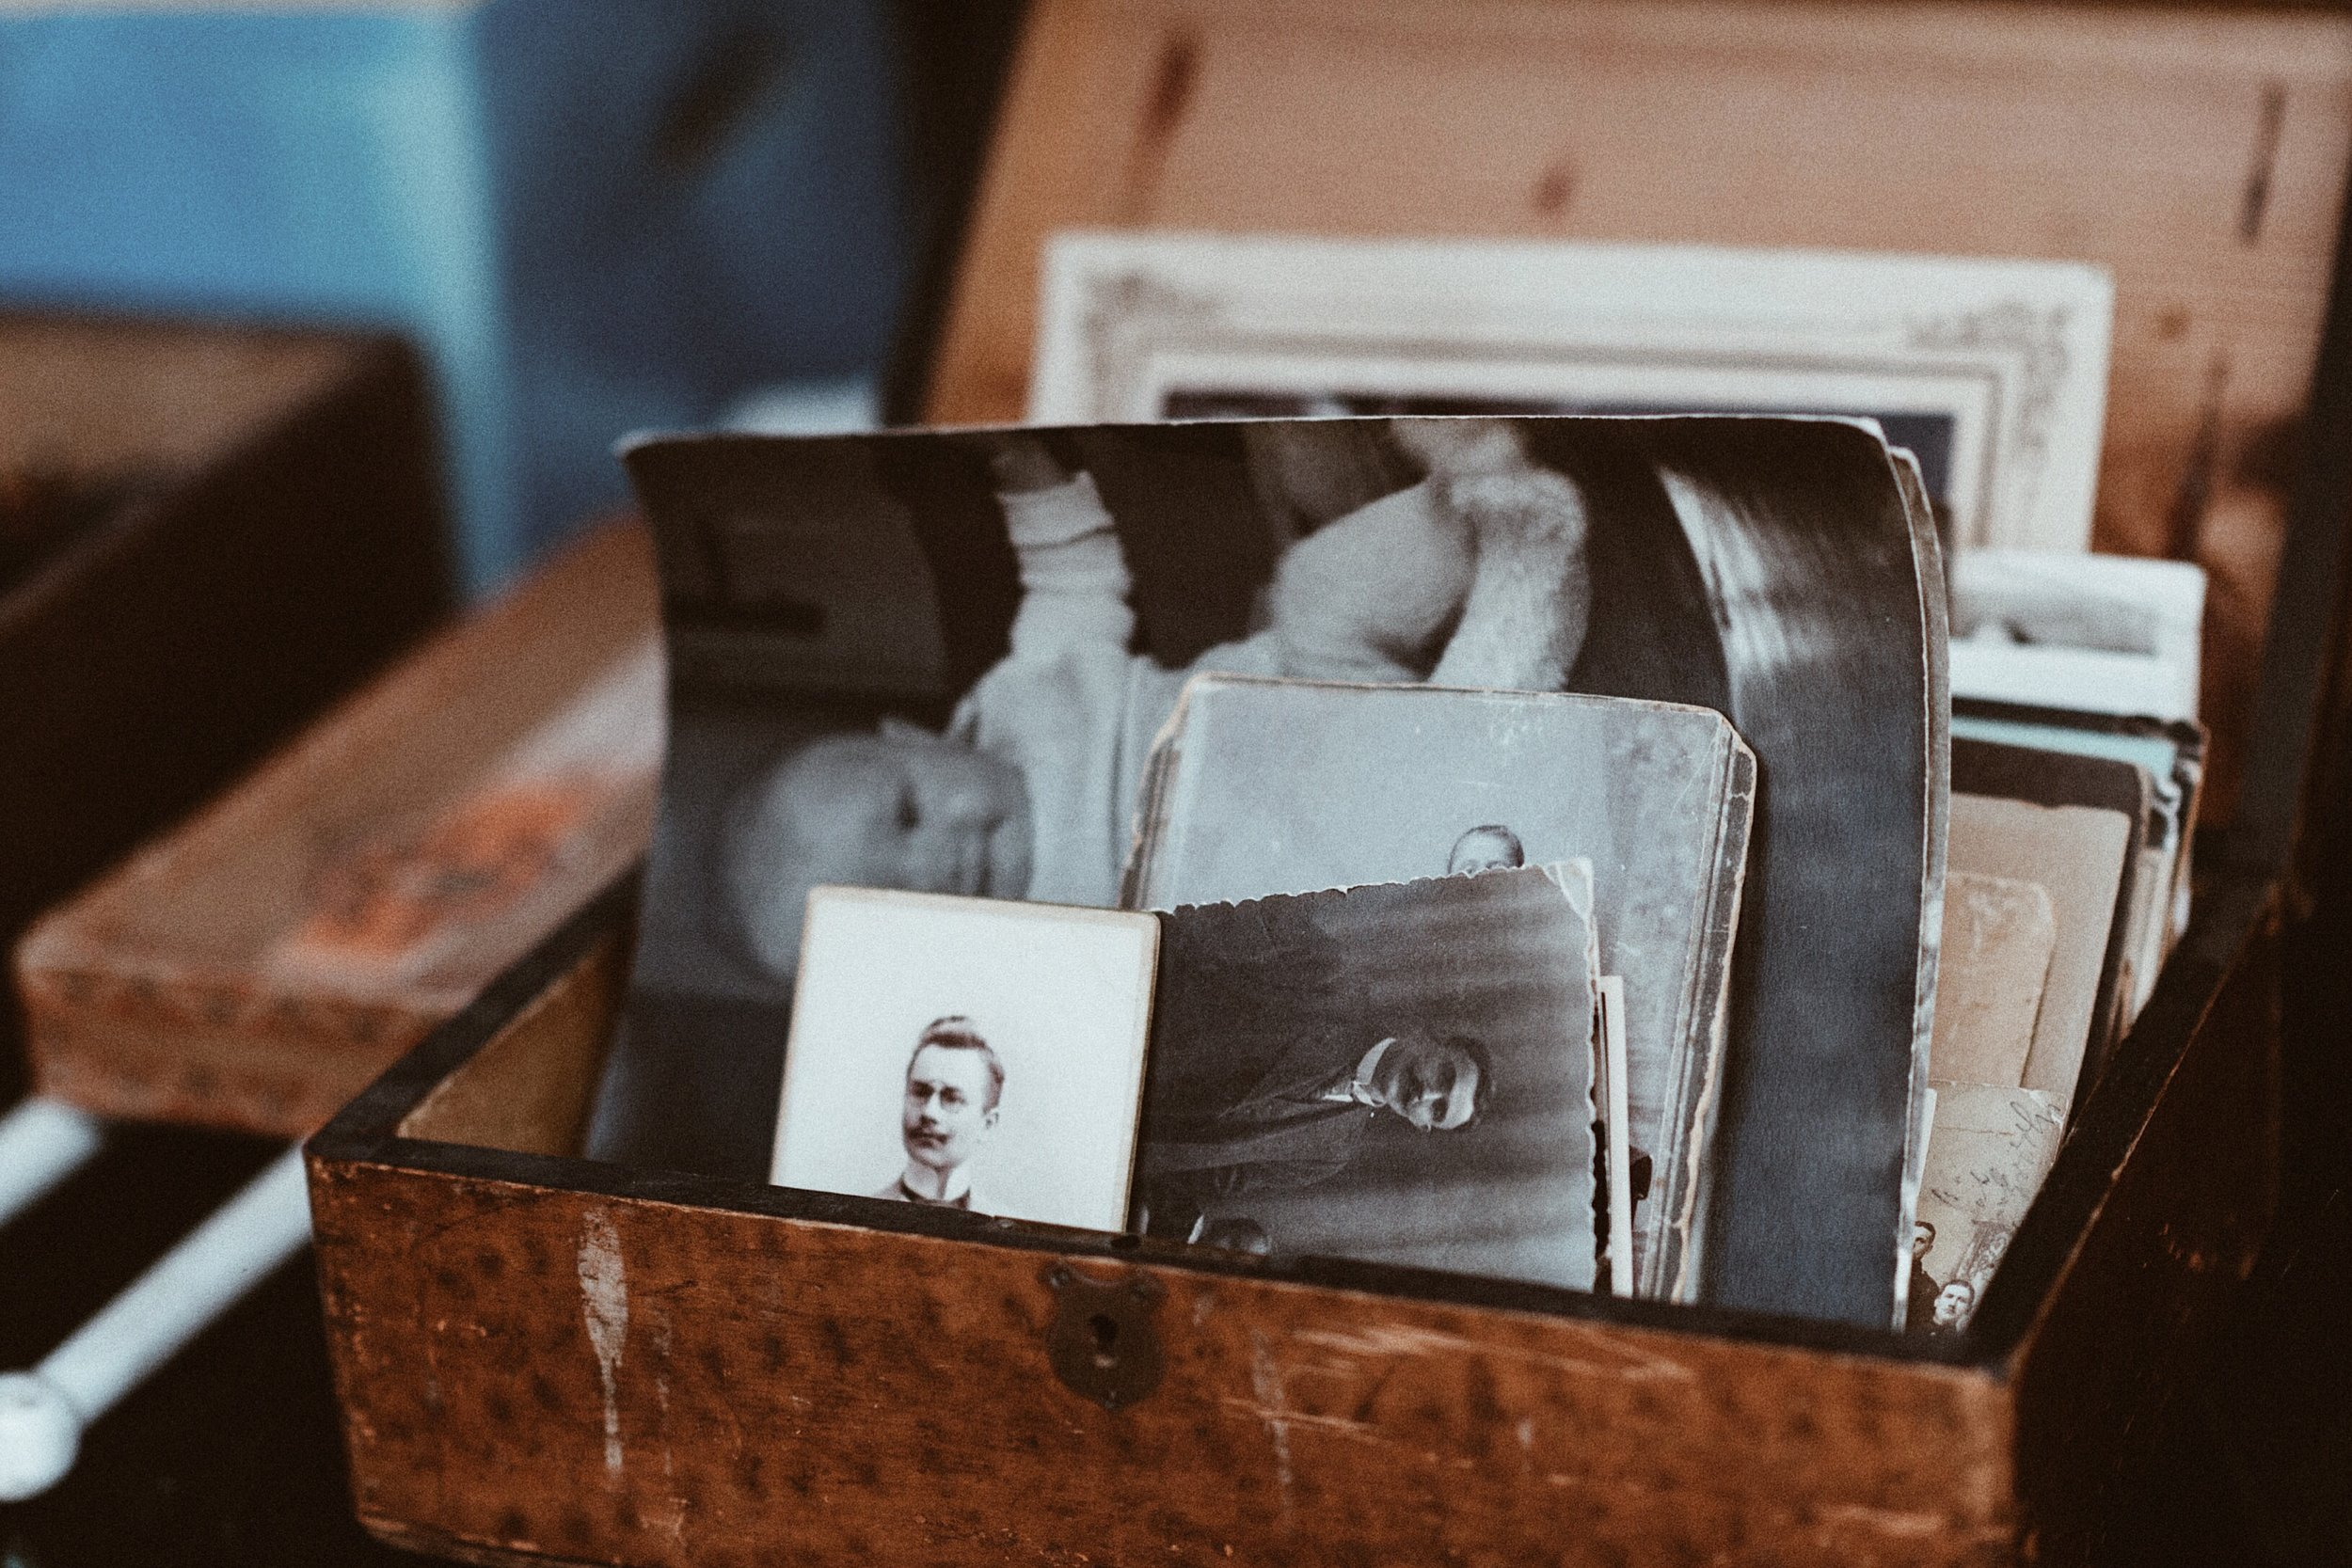 Image is of old black and white photographs in a worn wooden box, presumably the photographer's family members from earlier times.